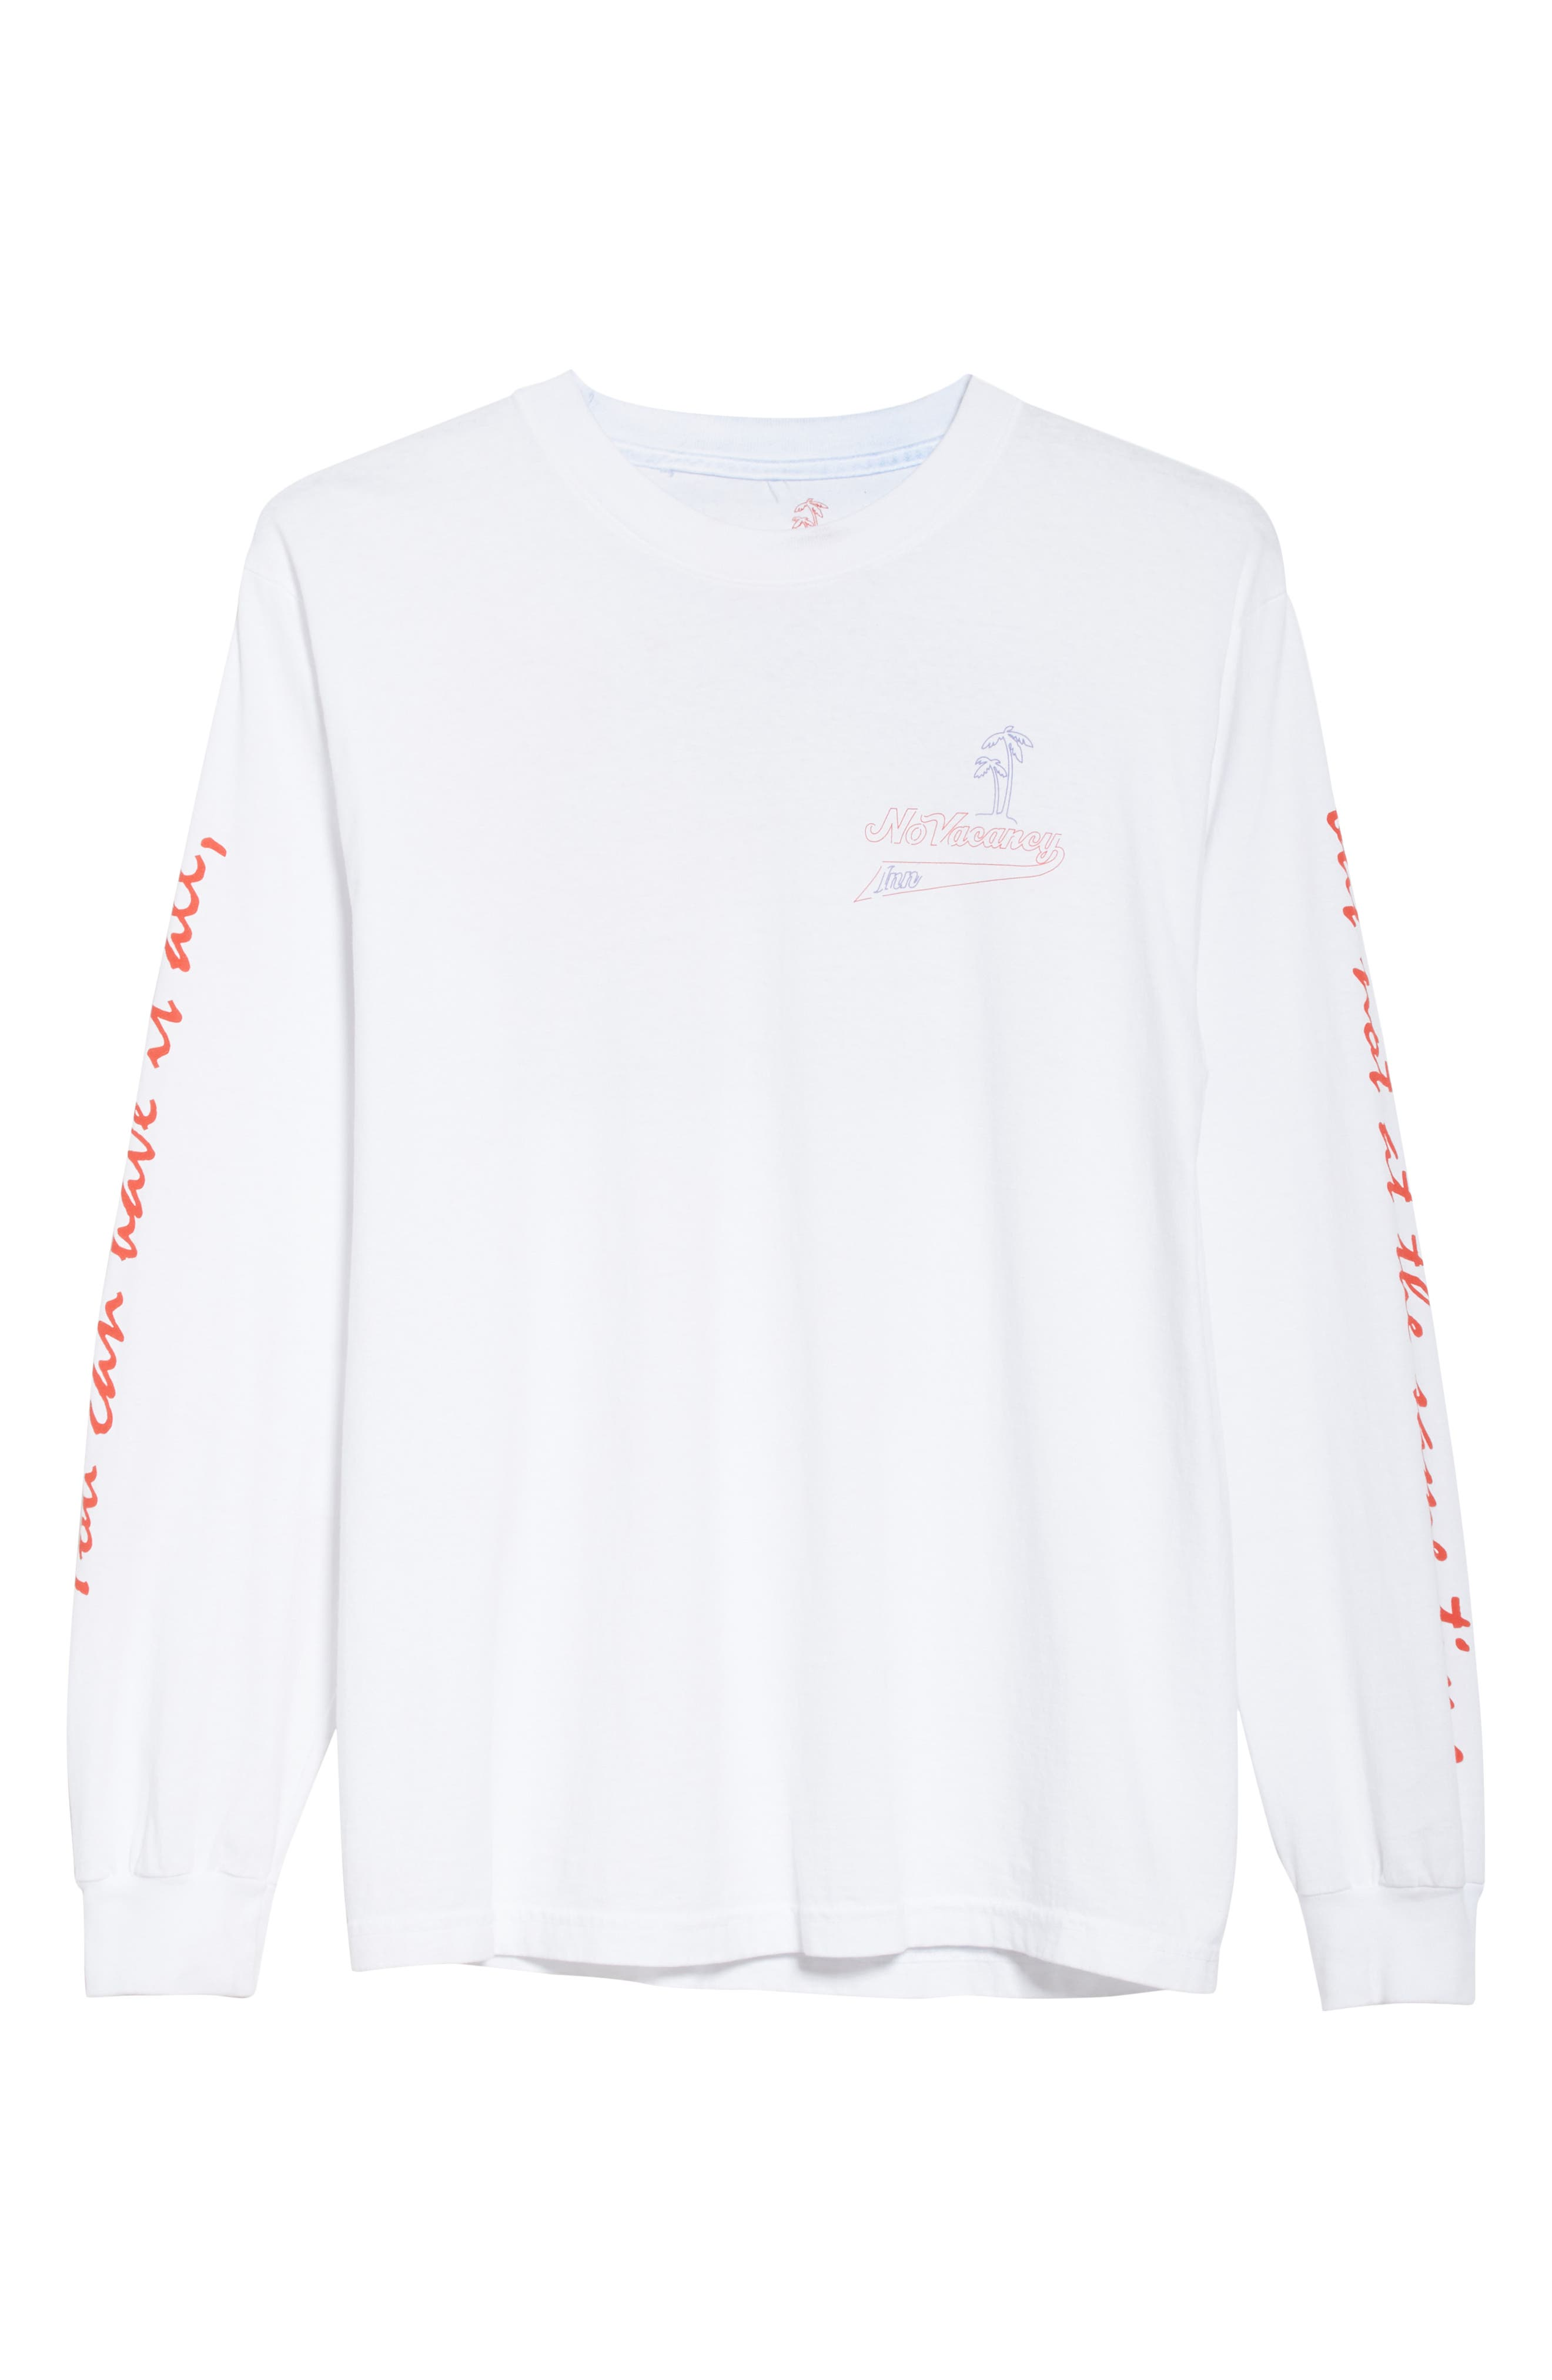 No Vacancy Inn Escape To Paradise Long Sleeve T-Shirt